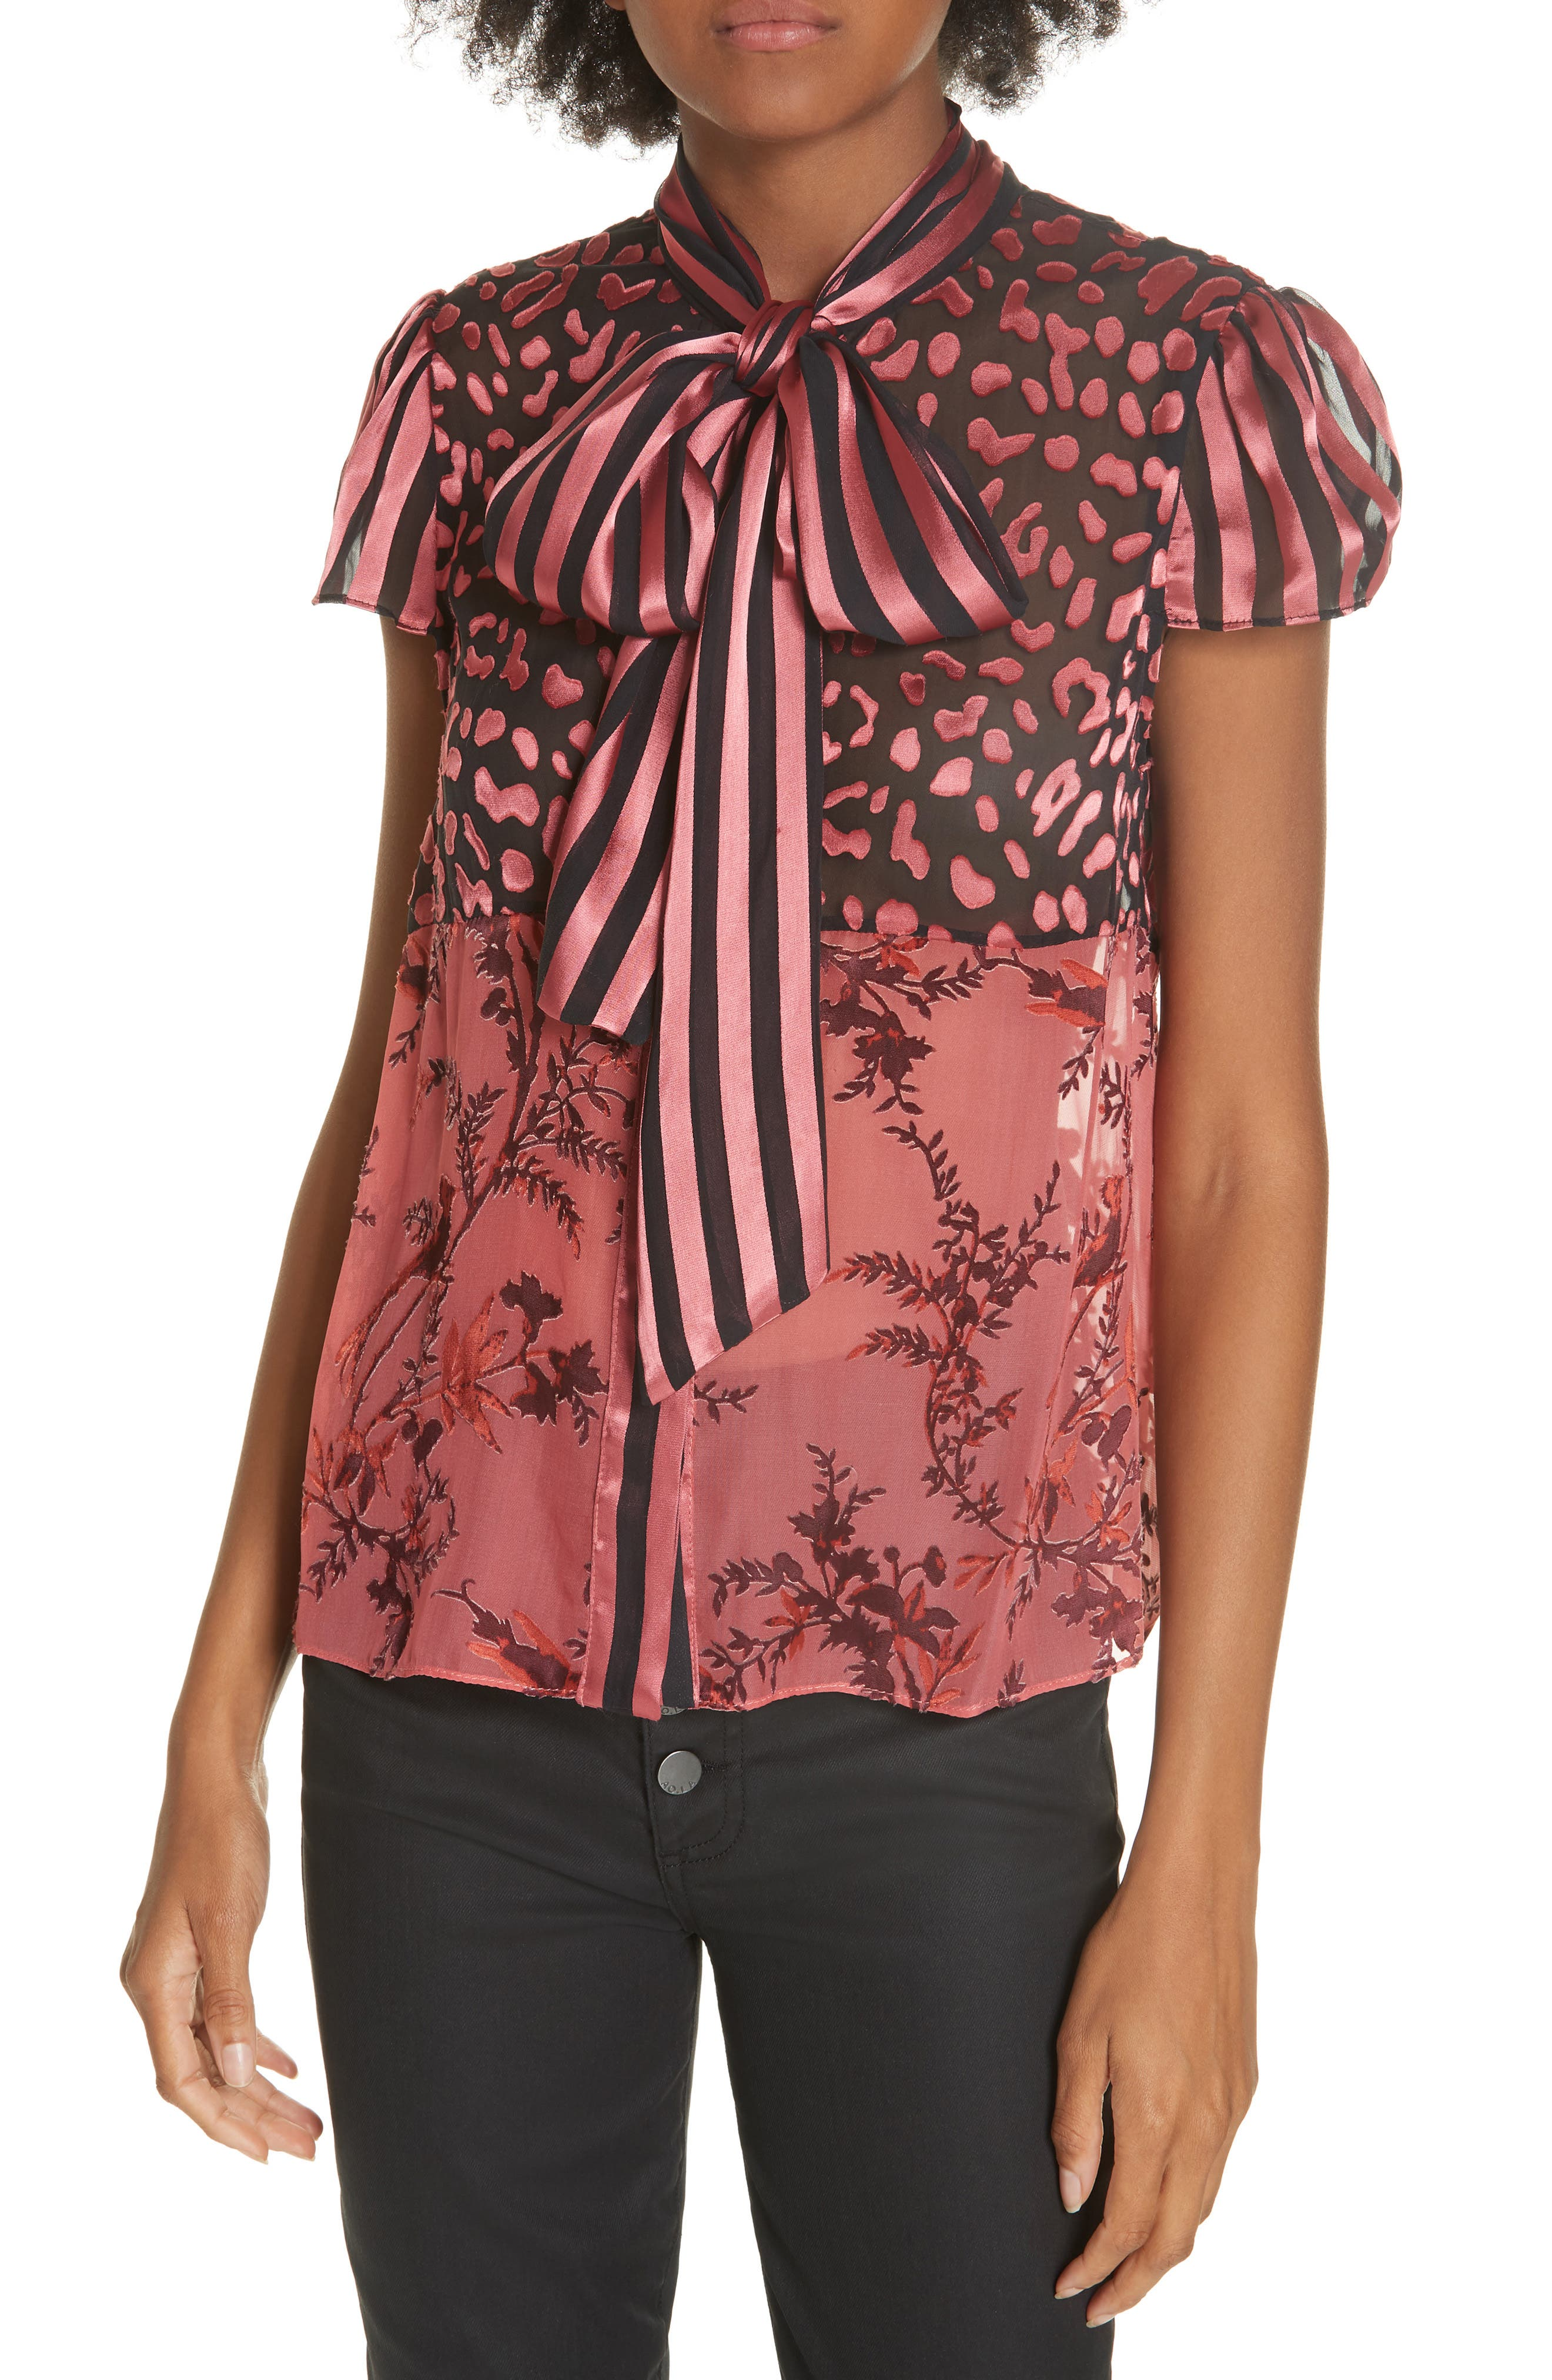 Jeannie Bow Neck Blouse,                         Main,                         color, TWO TONE BIRD/ ROSE